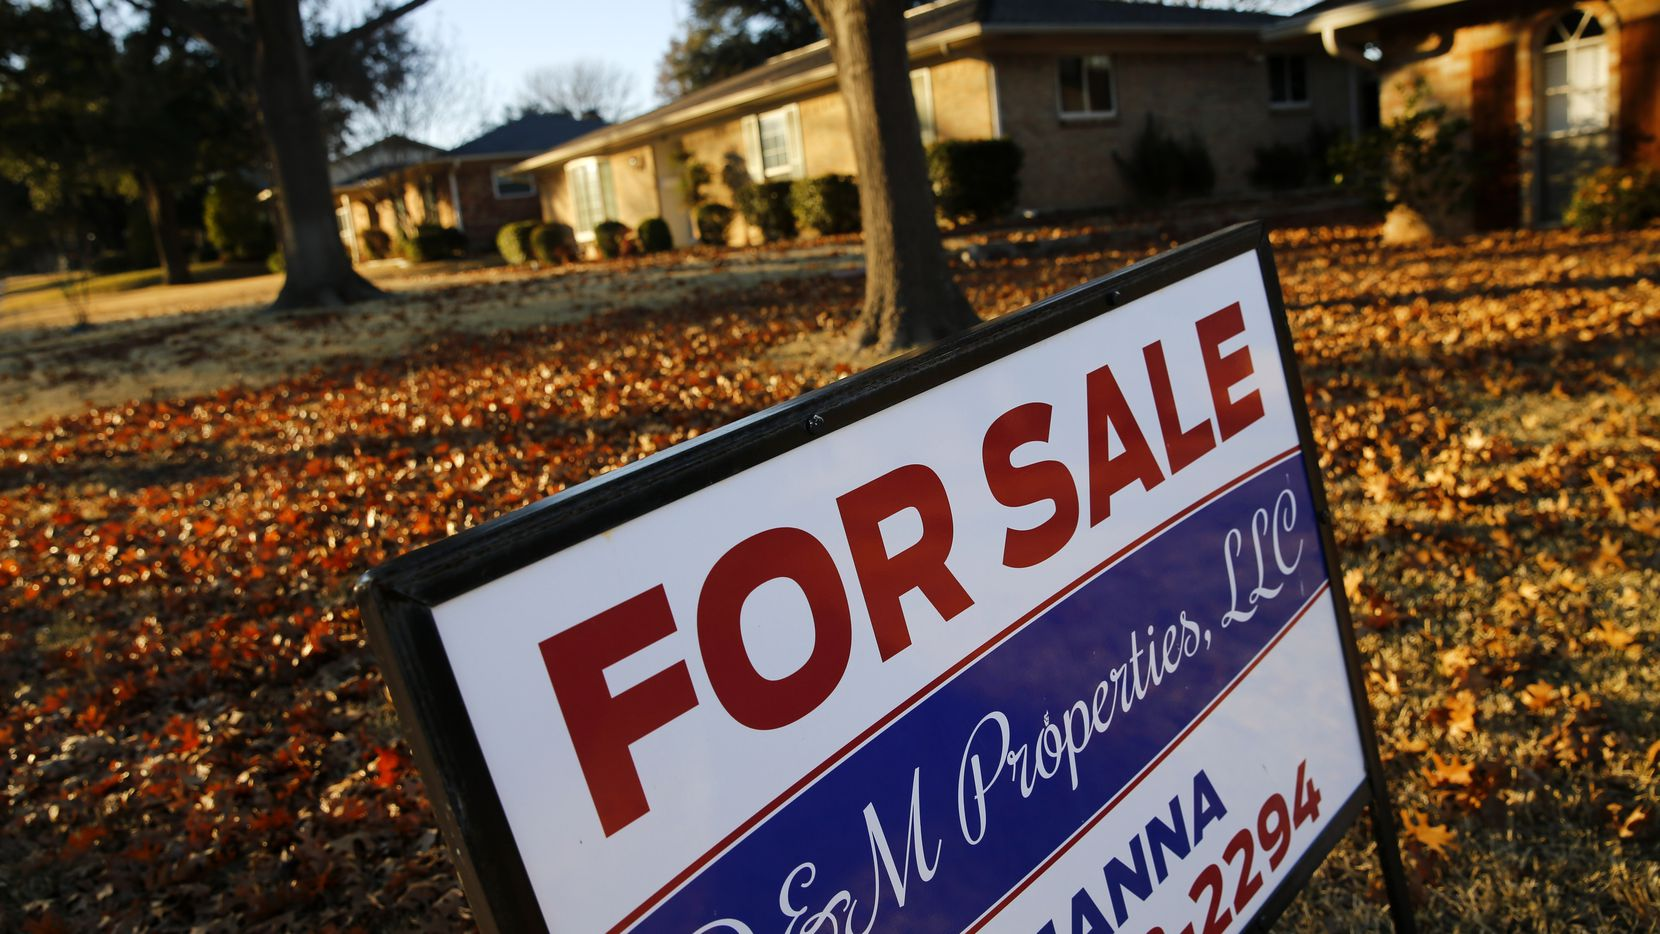 Higher interest rates could temper D-FW home price increases in 2018.